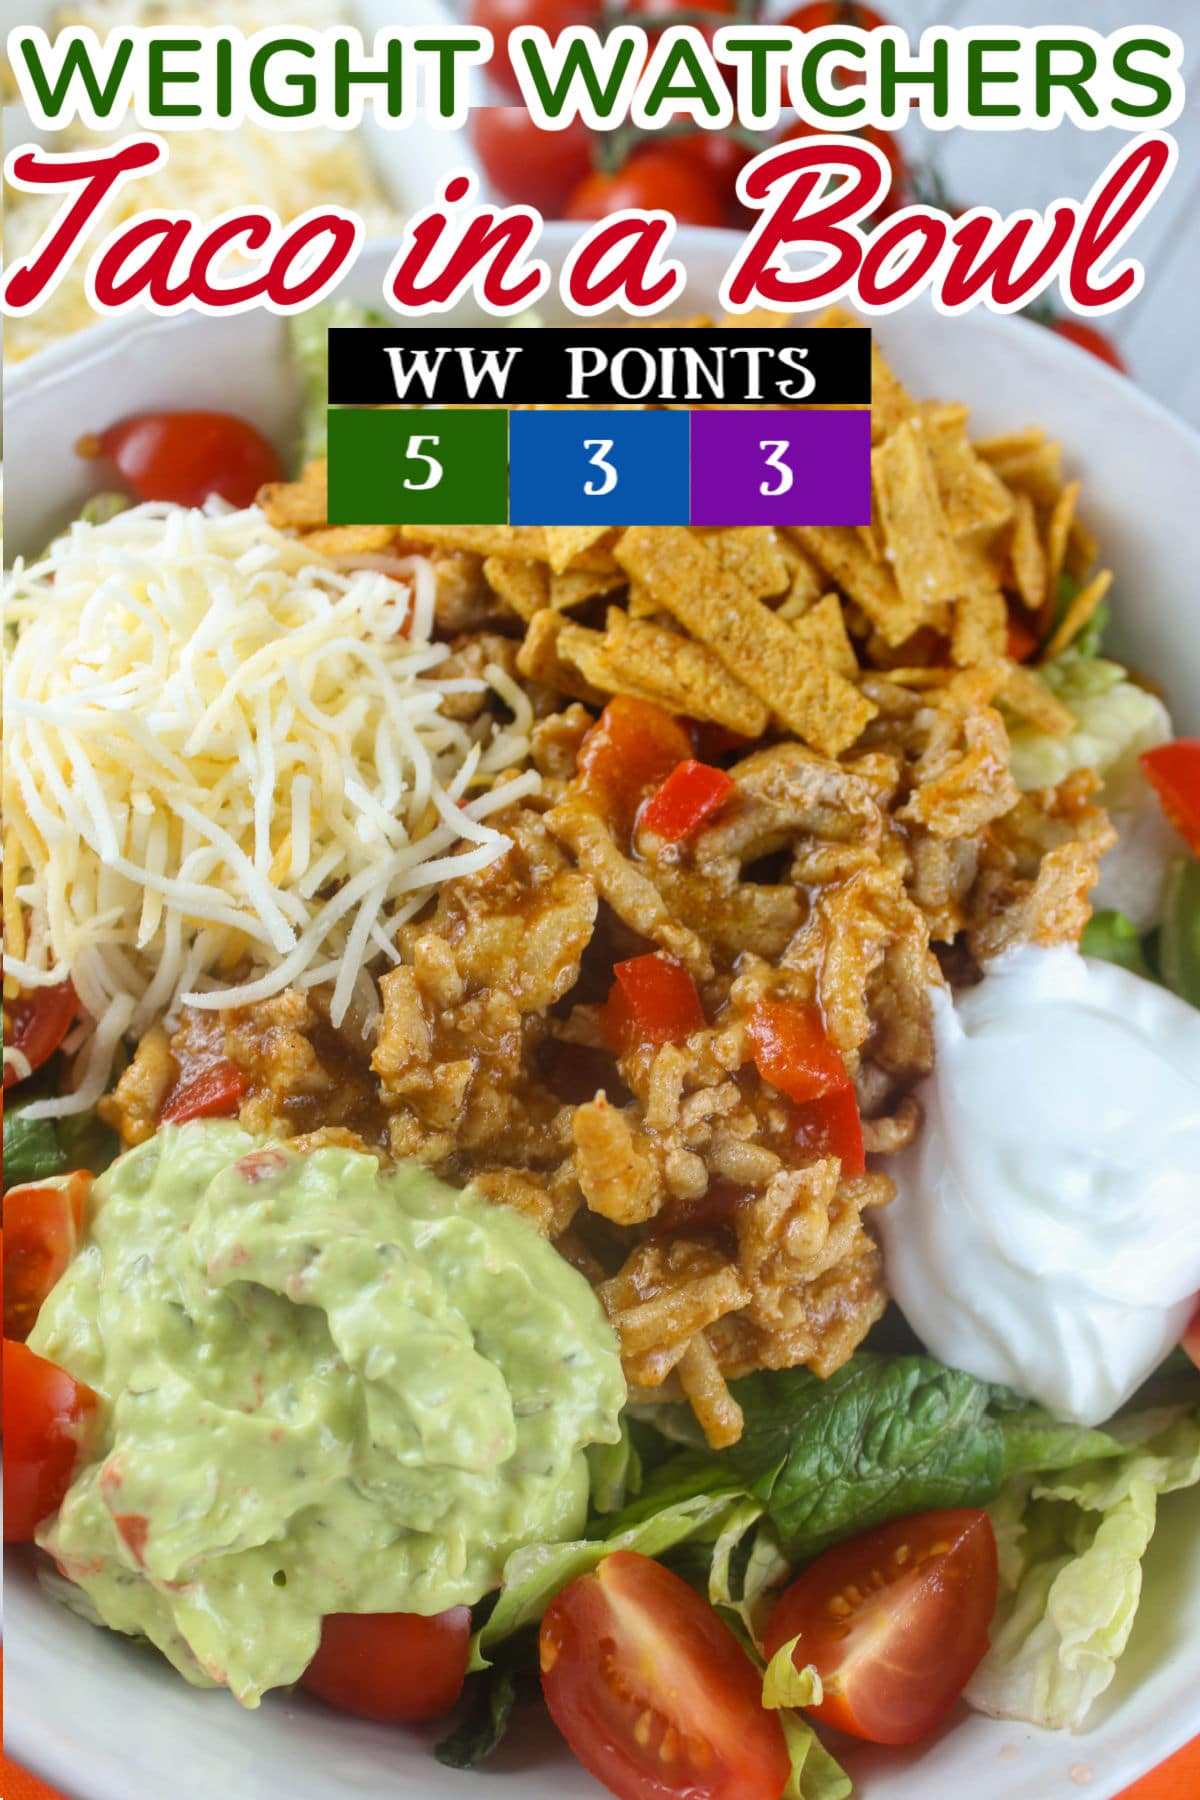 Weight Watchers Taco in a Bowl is an easy-to-make dinner that's on the table in about 15 minutes! Ground turkey is easy to cook and takes on the flavor of the taco seasoning but saves lots of calories!  via @foodhussy